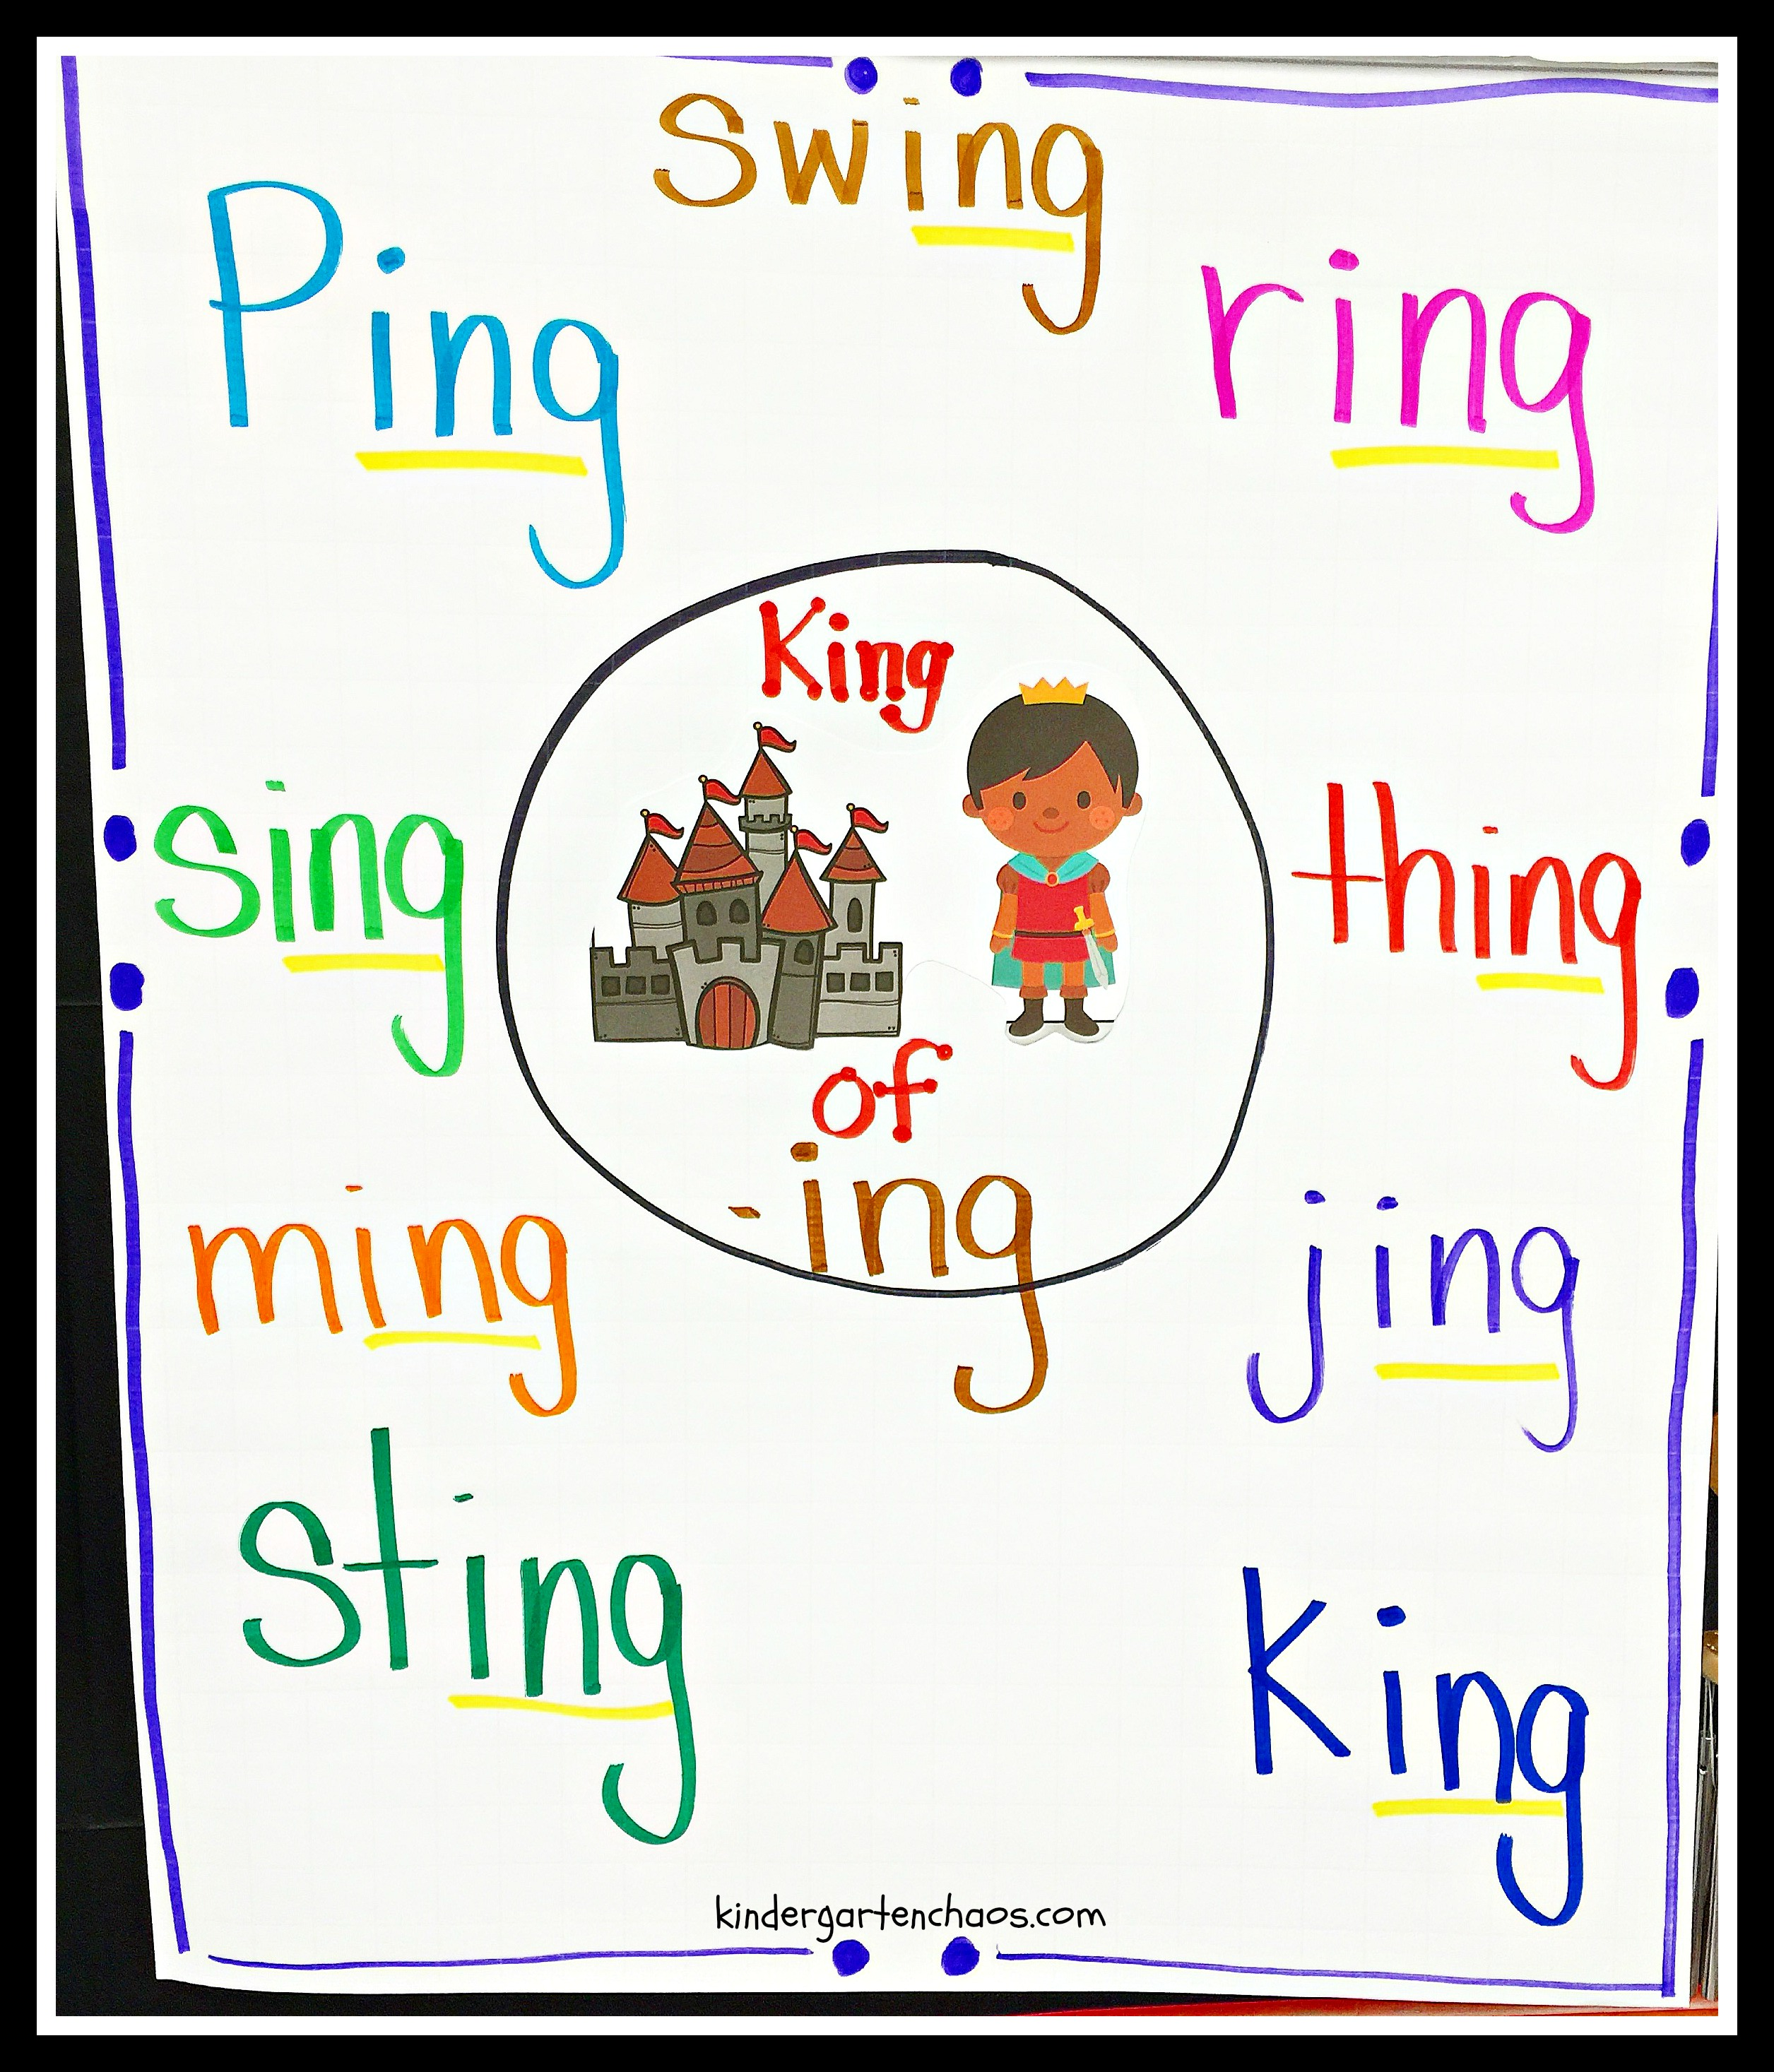 King Of Ing Anchor Chart Kindergartenchaos